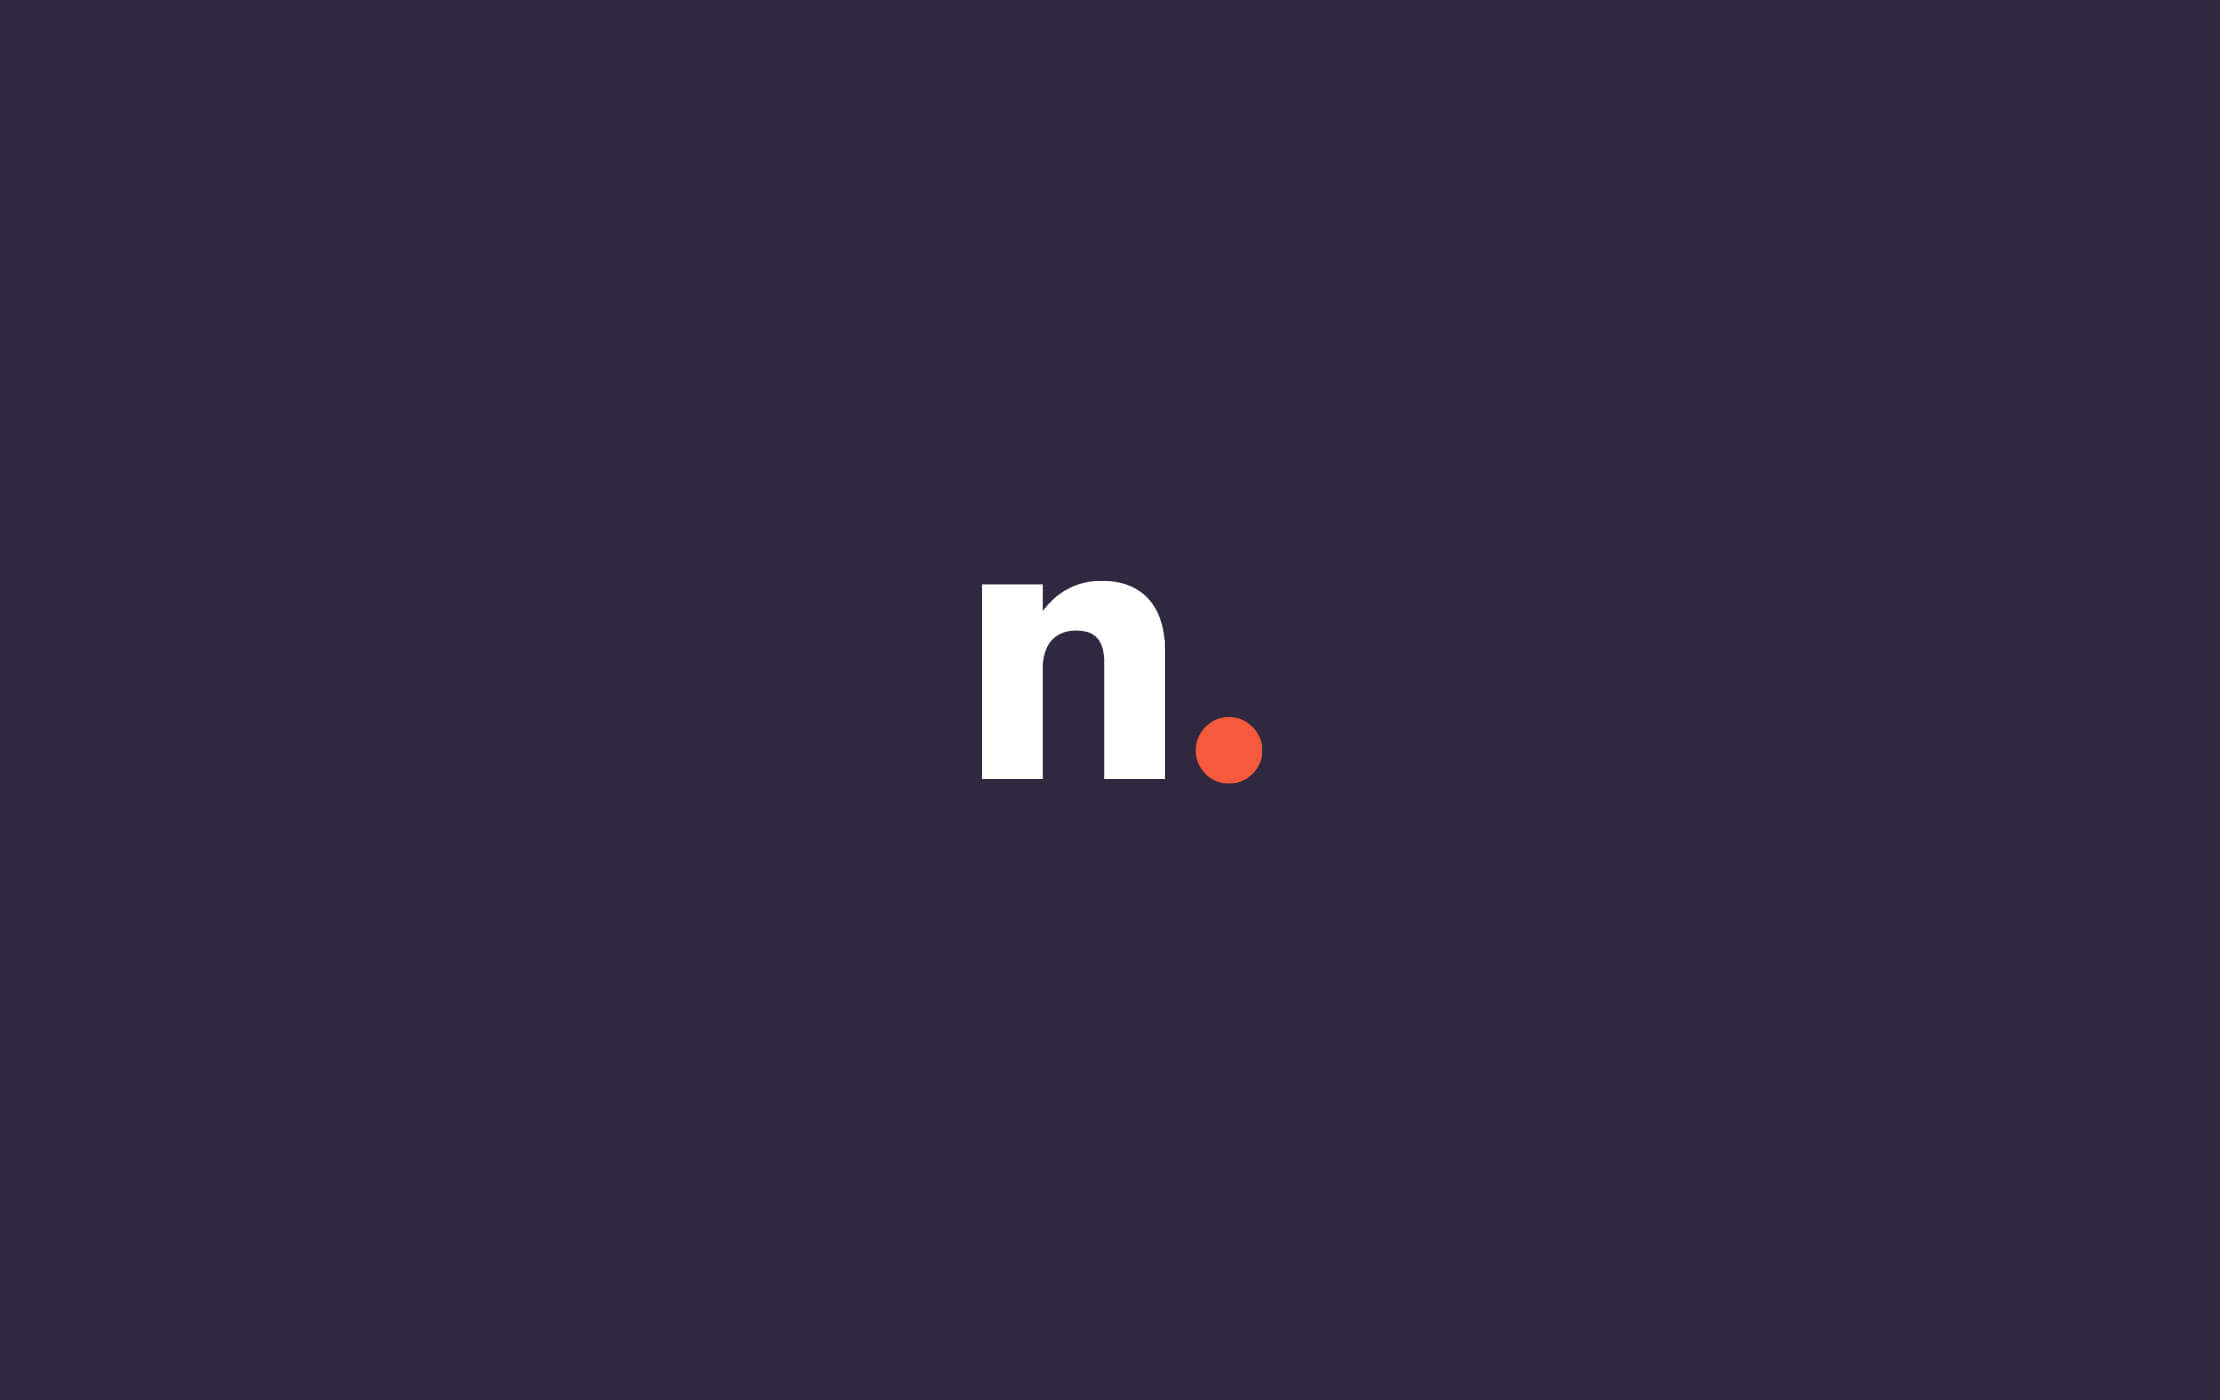 Rebranded logomark lowercase letter N, in white, with an orange full stop on a dark purple background